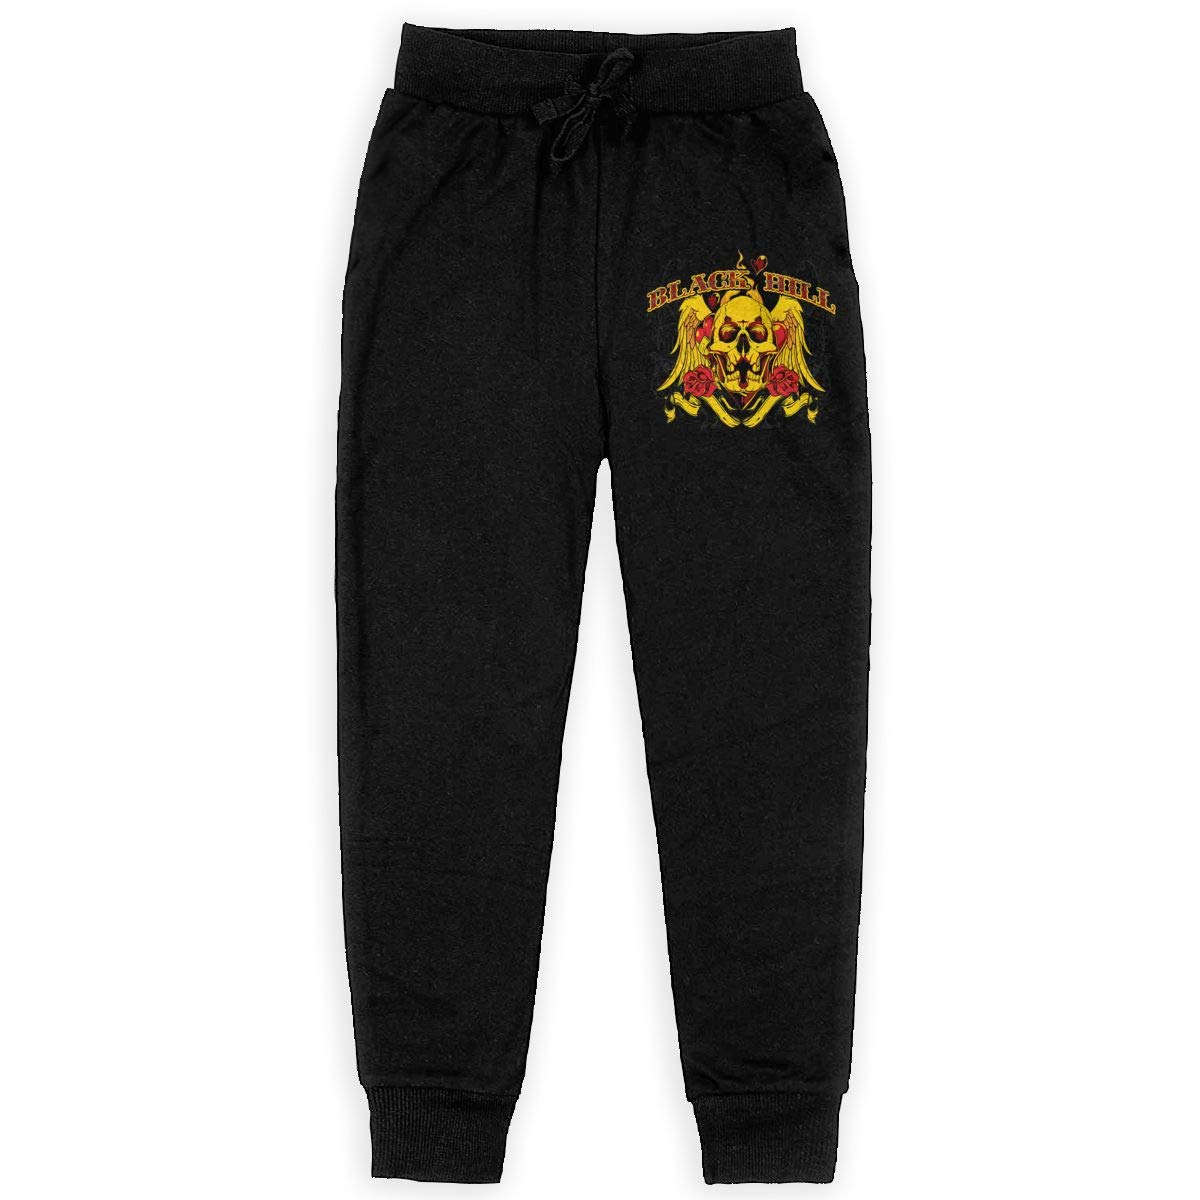 Xinding Boys Fashion Training Sweatpants Black Hill Adjustable Waist Trousers with Pocket